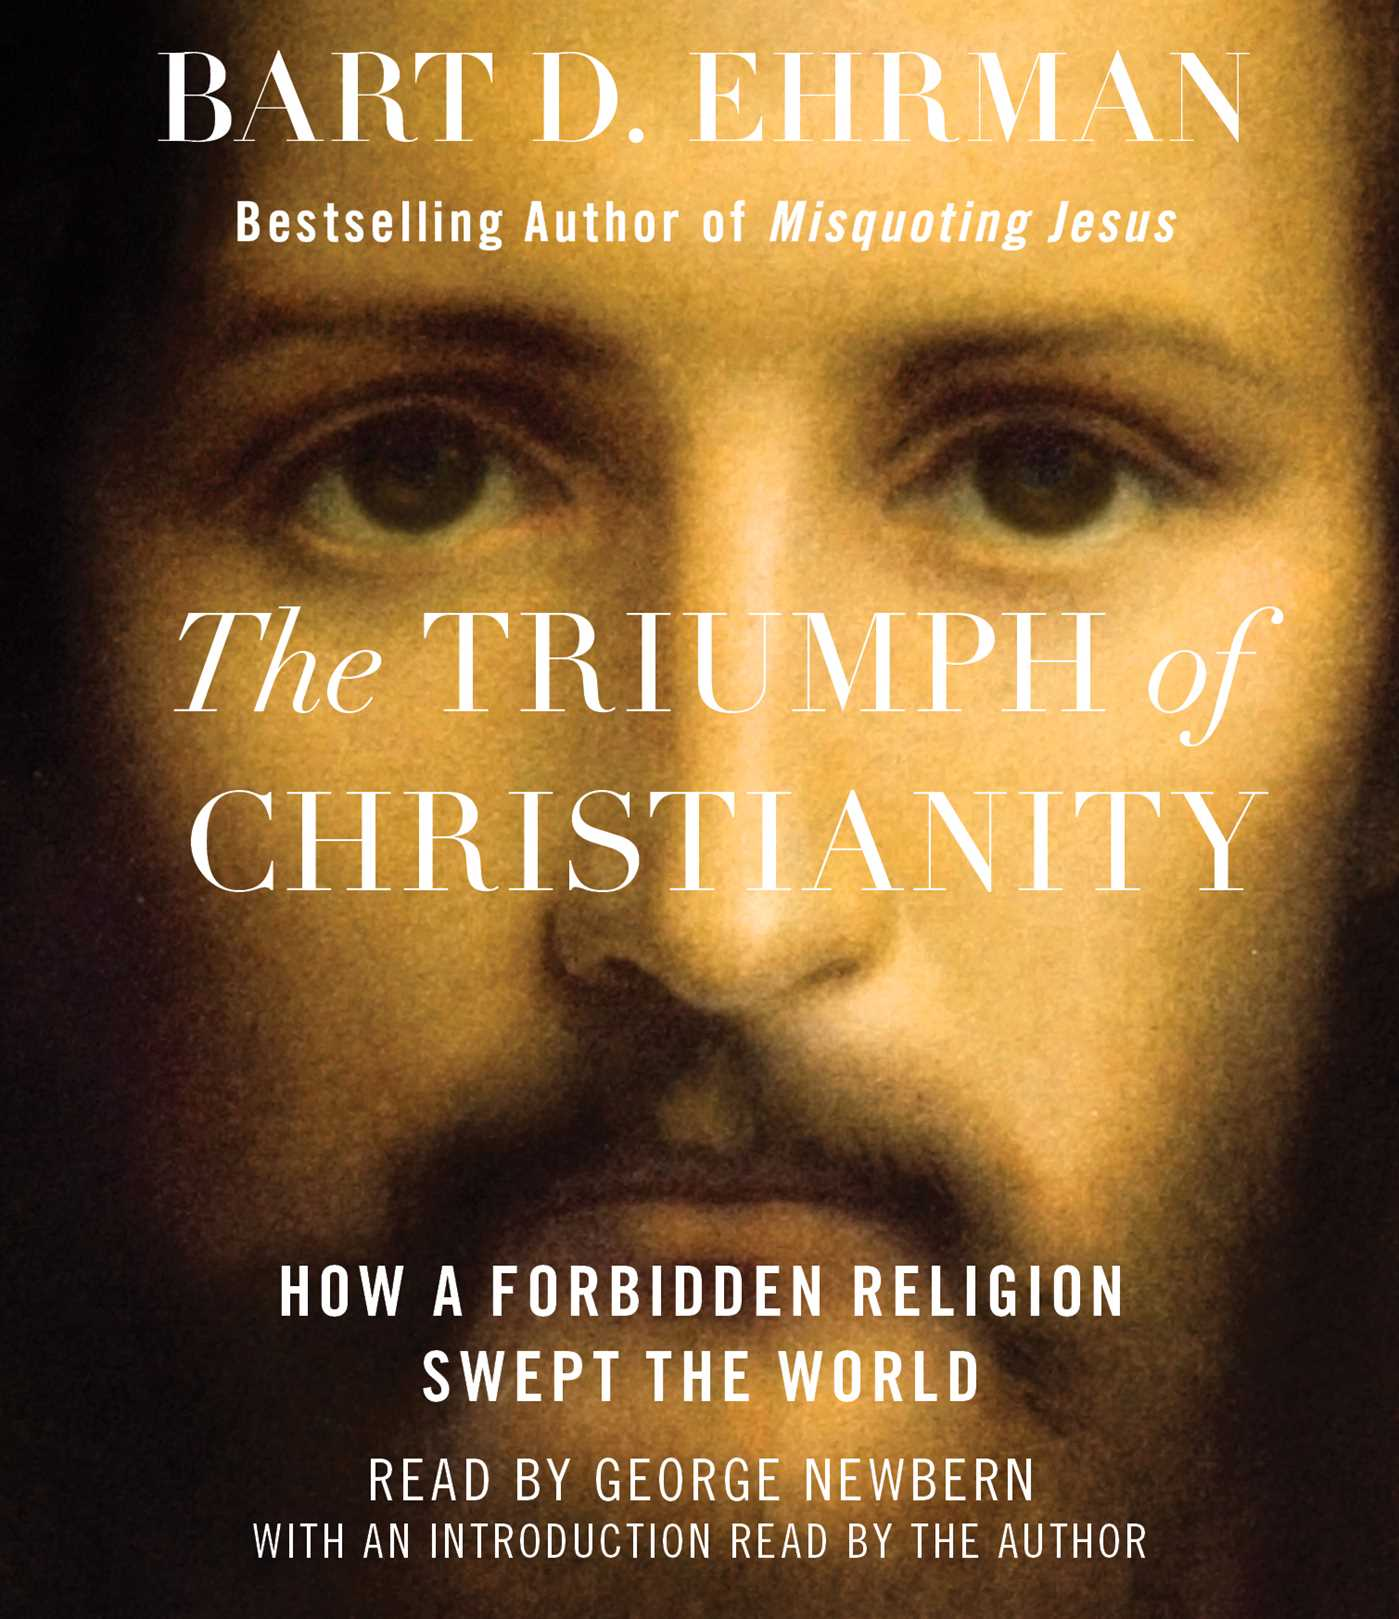 The triumph of christianity 9781508238331 hr